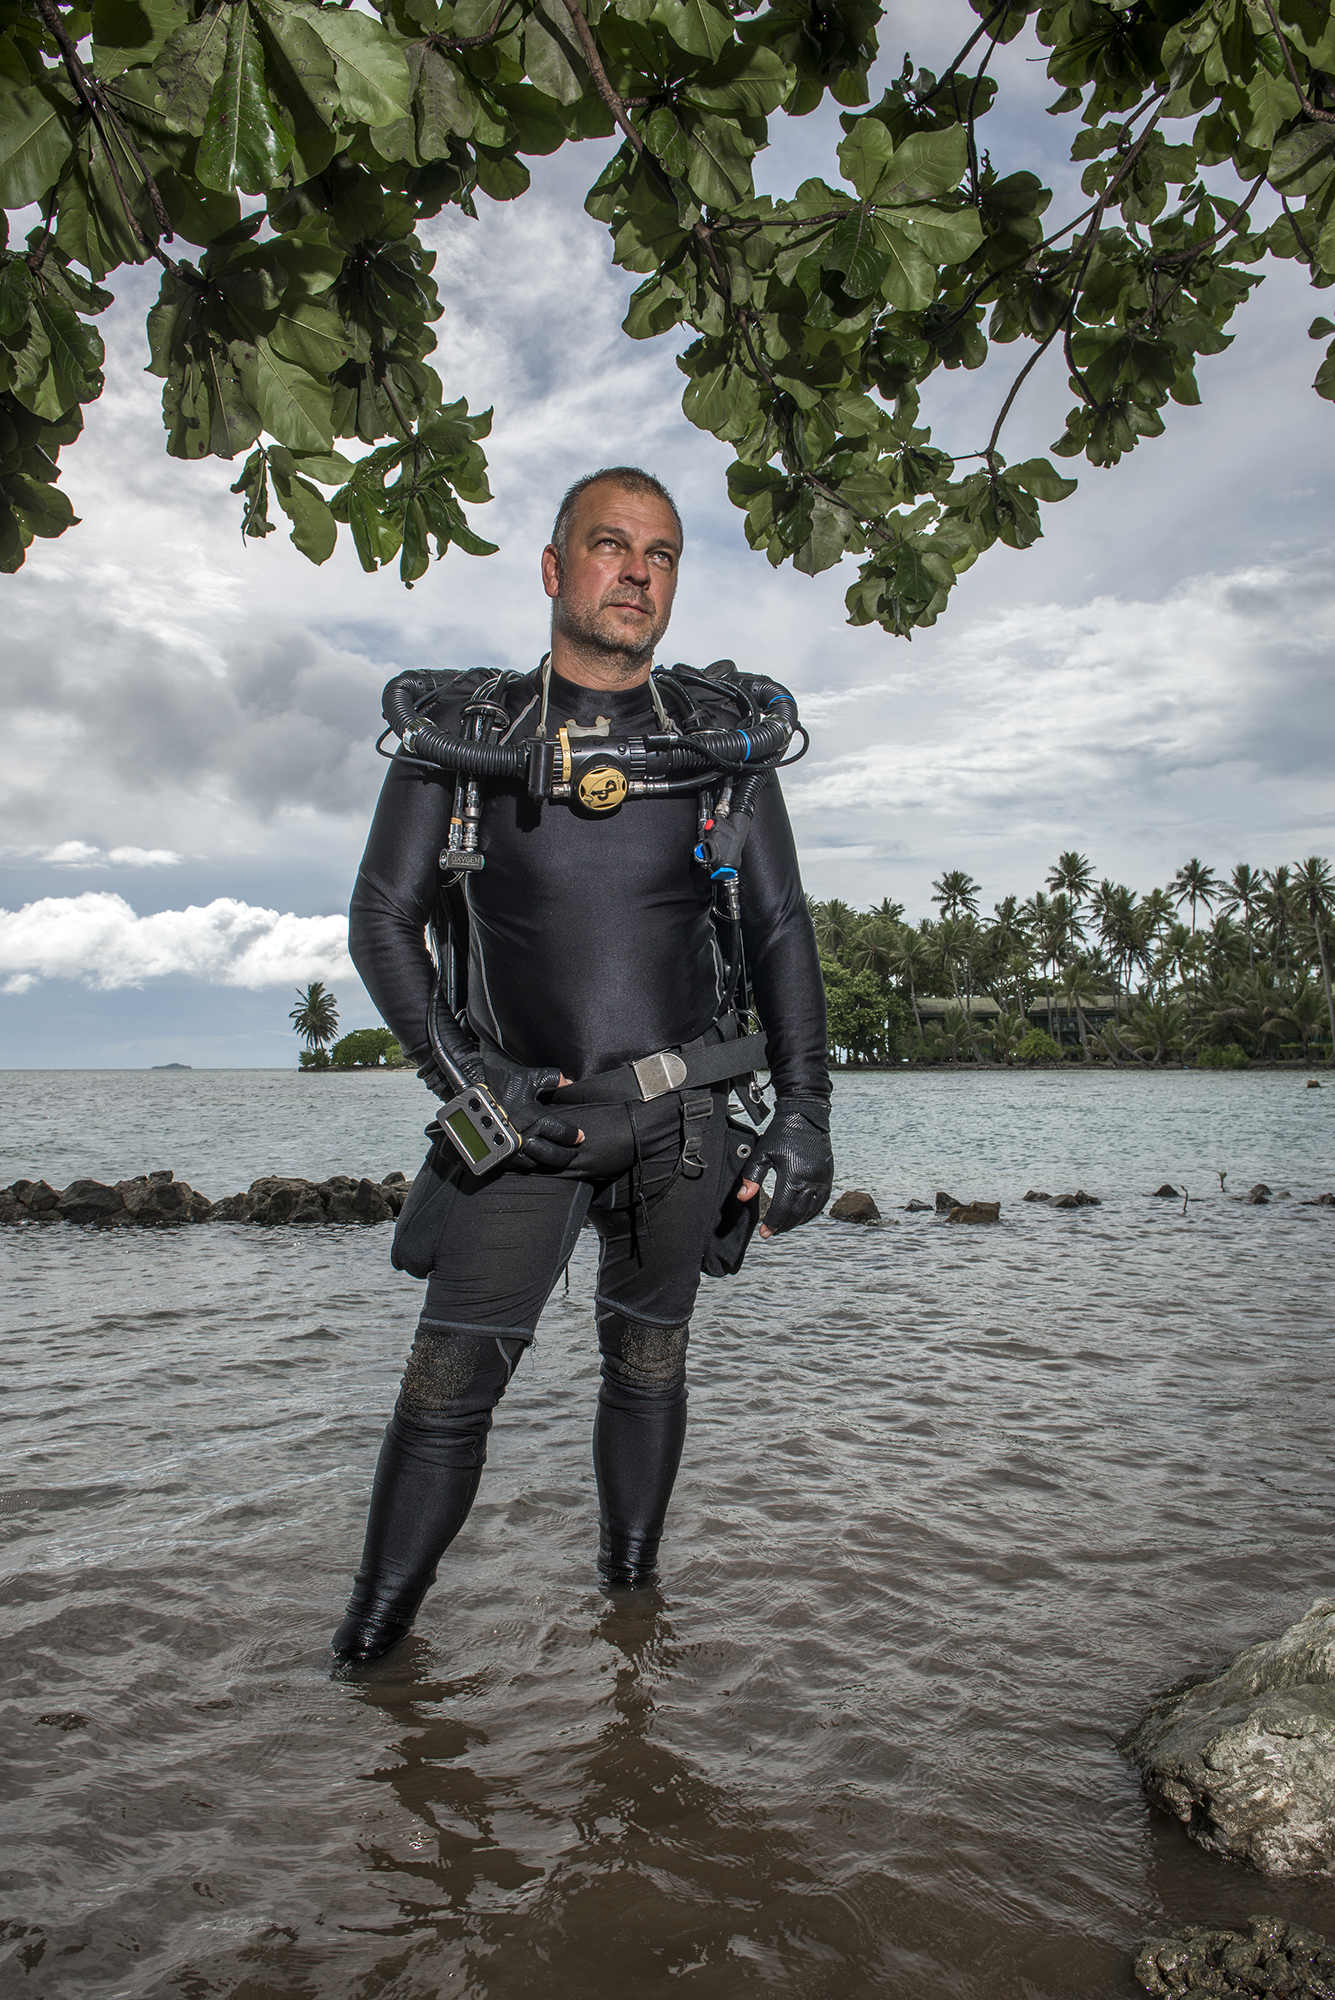 <p>Pete Mesley, who oftenleads tours to the Blue Lagoon Resort, operates a company called Lust4Rust. He'd like to see improvements made to Chuuk's infrastructure to help expand tourism.</p>